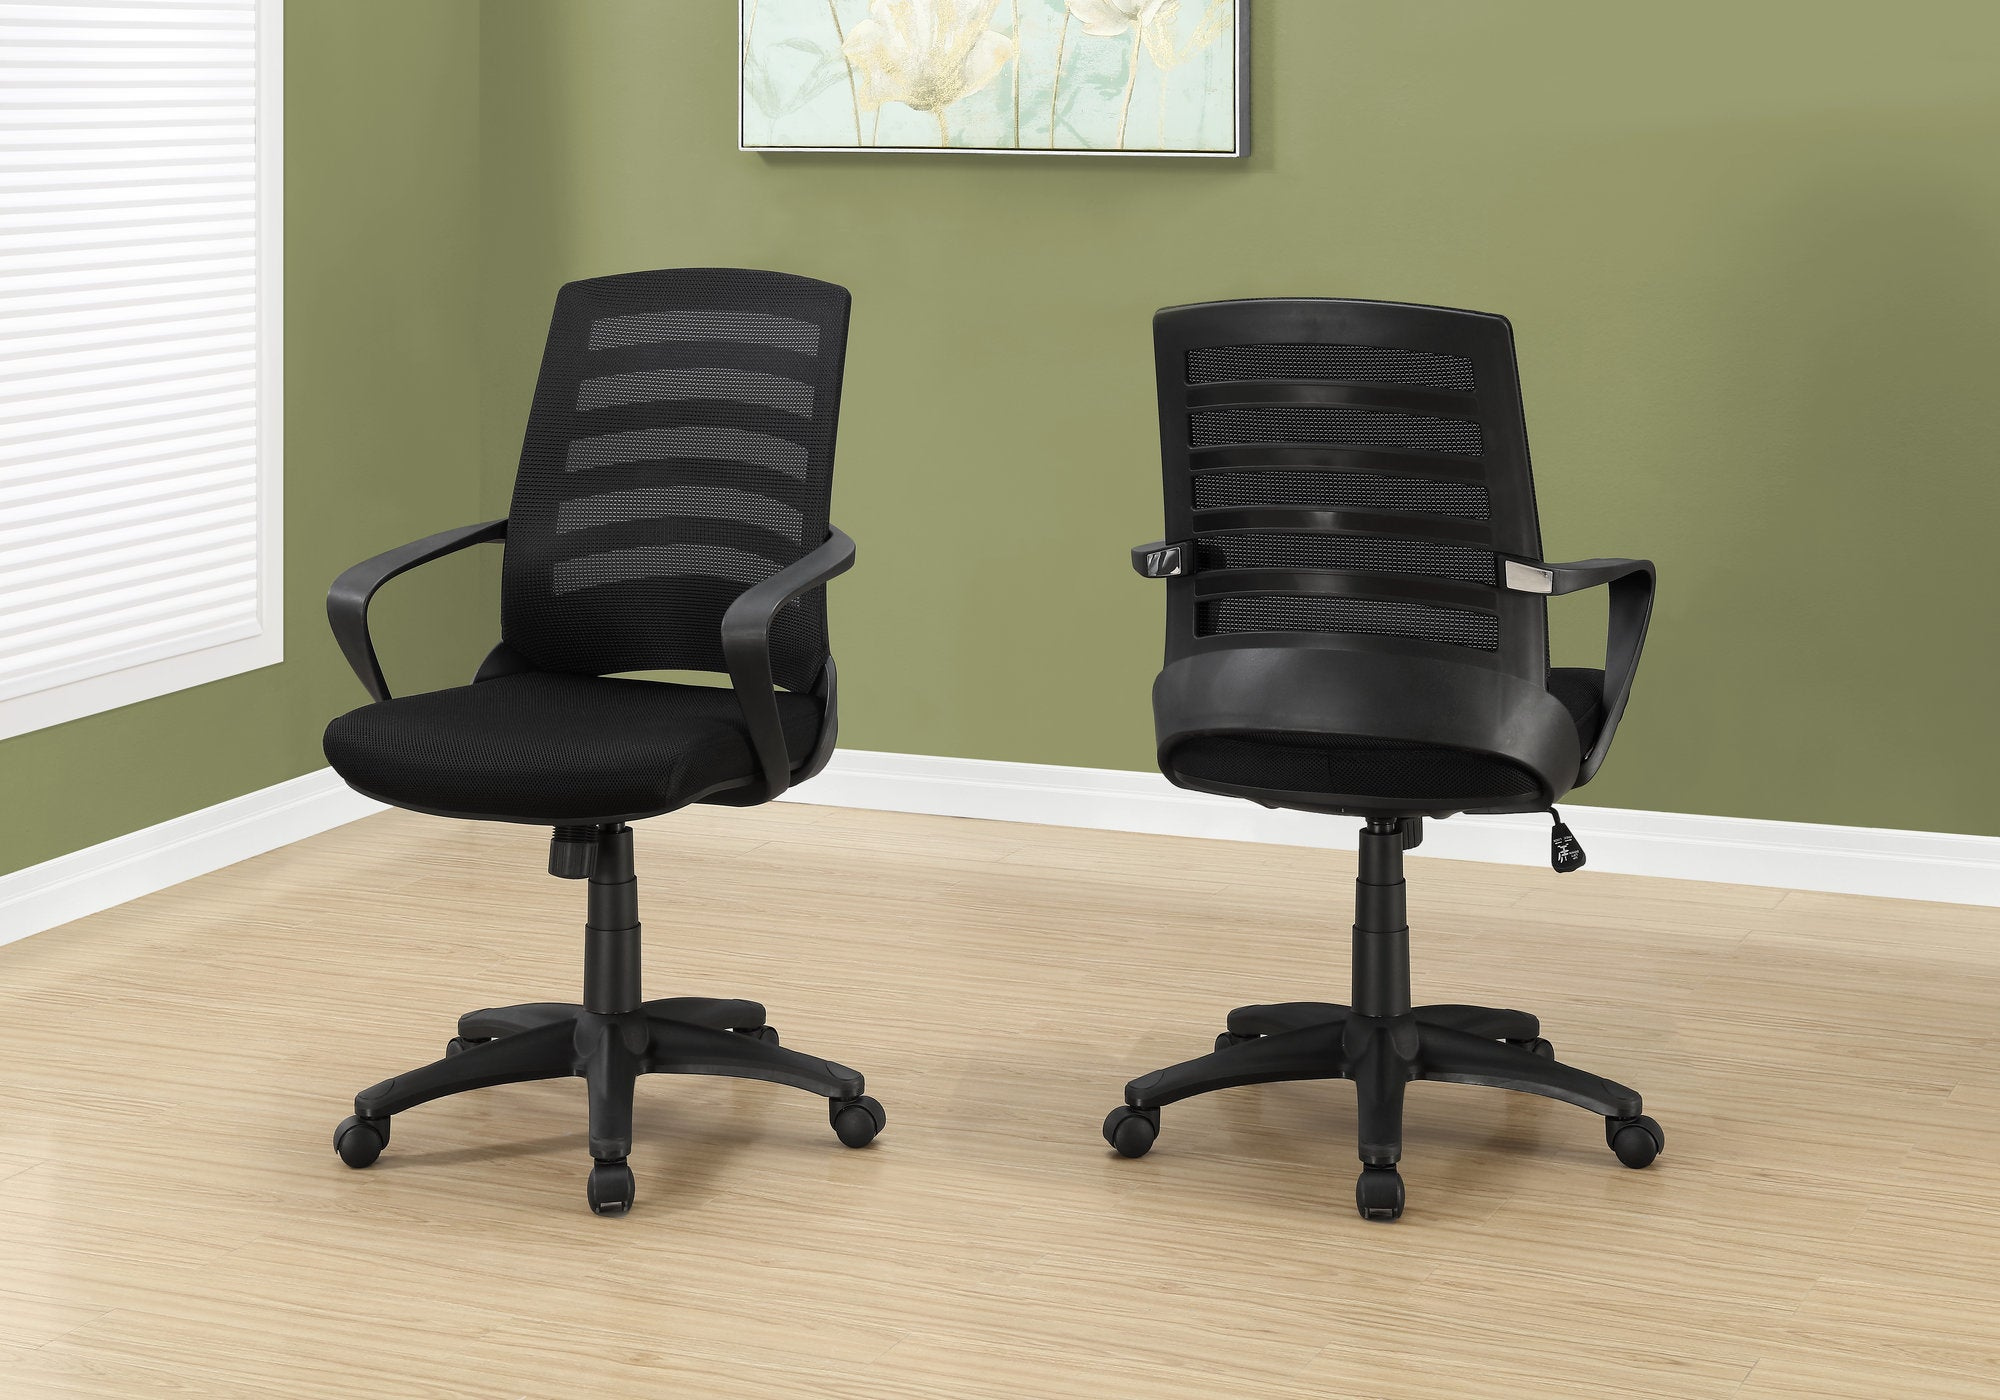 Ergonomic Black Mesh Rolling Office Chair w/ Arms